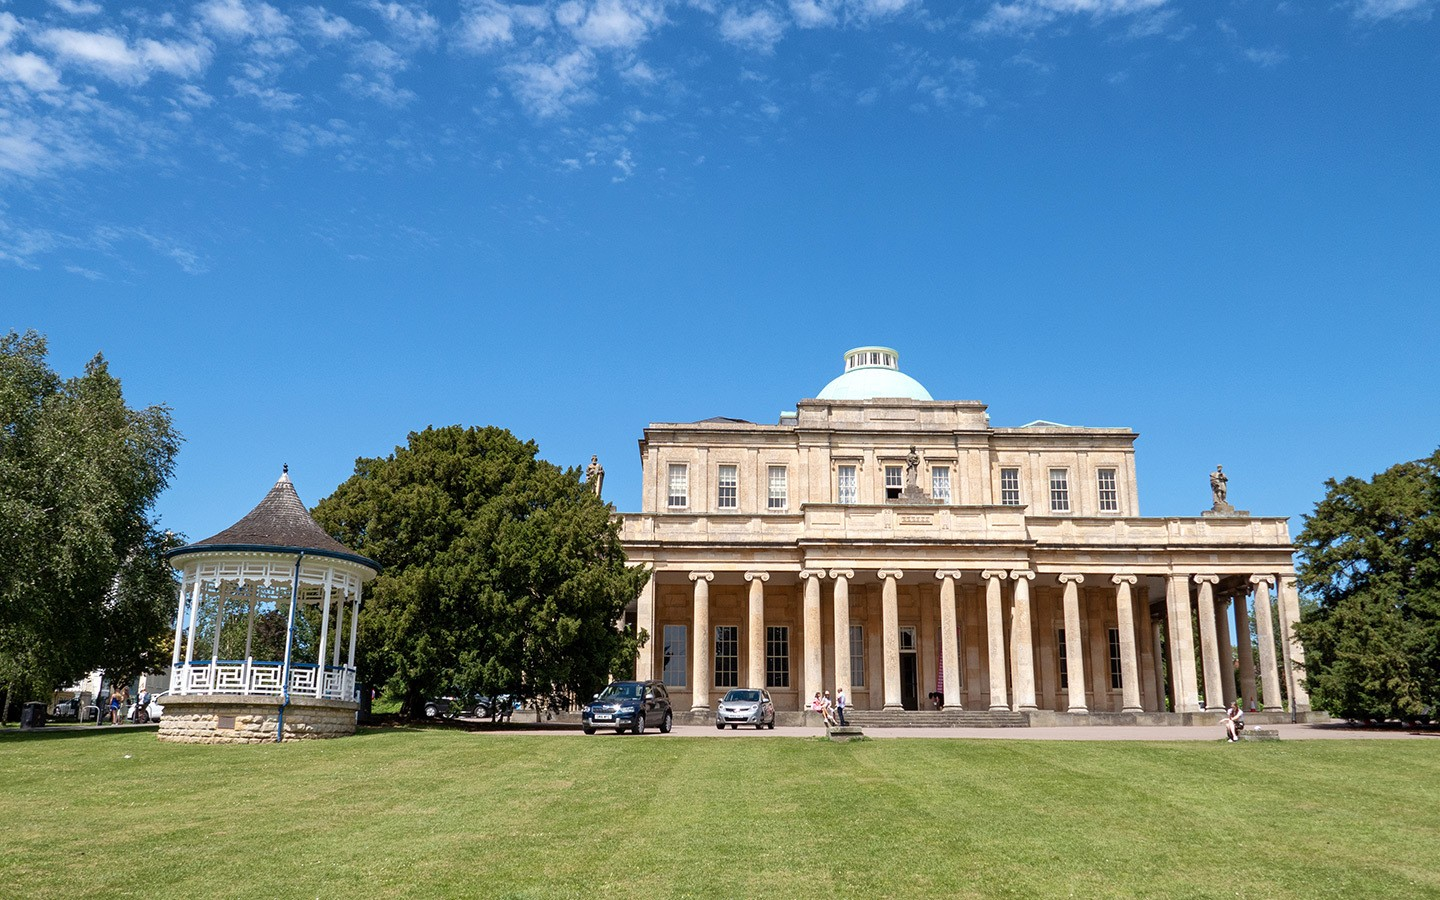 The Pittville Pump Room and park in Cheltenham